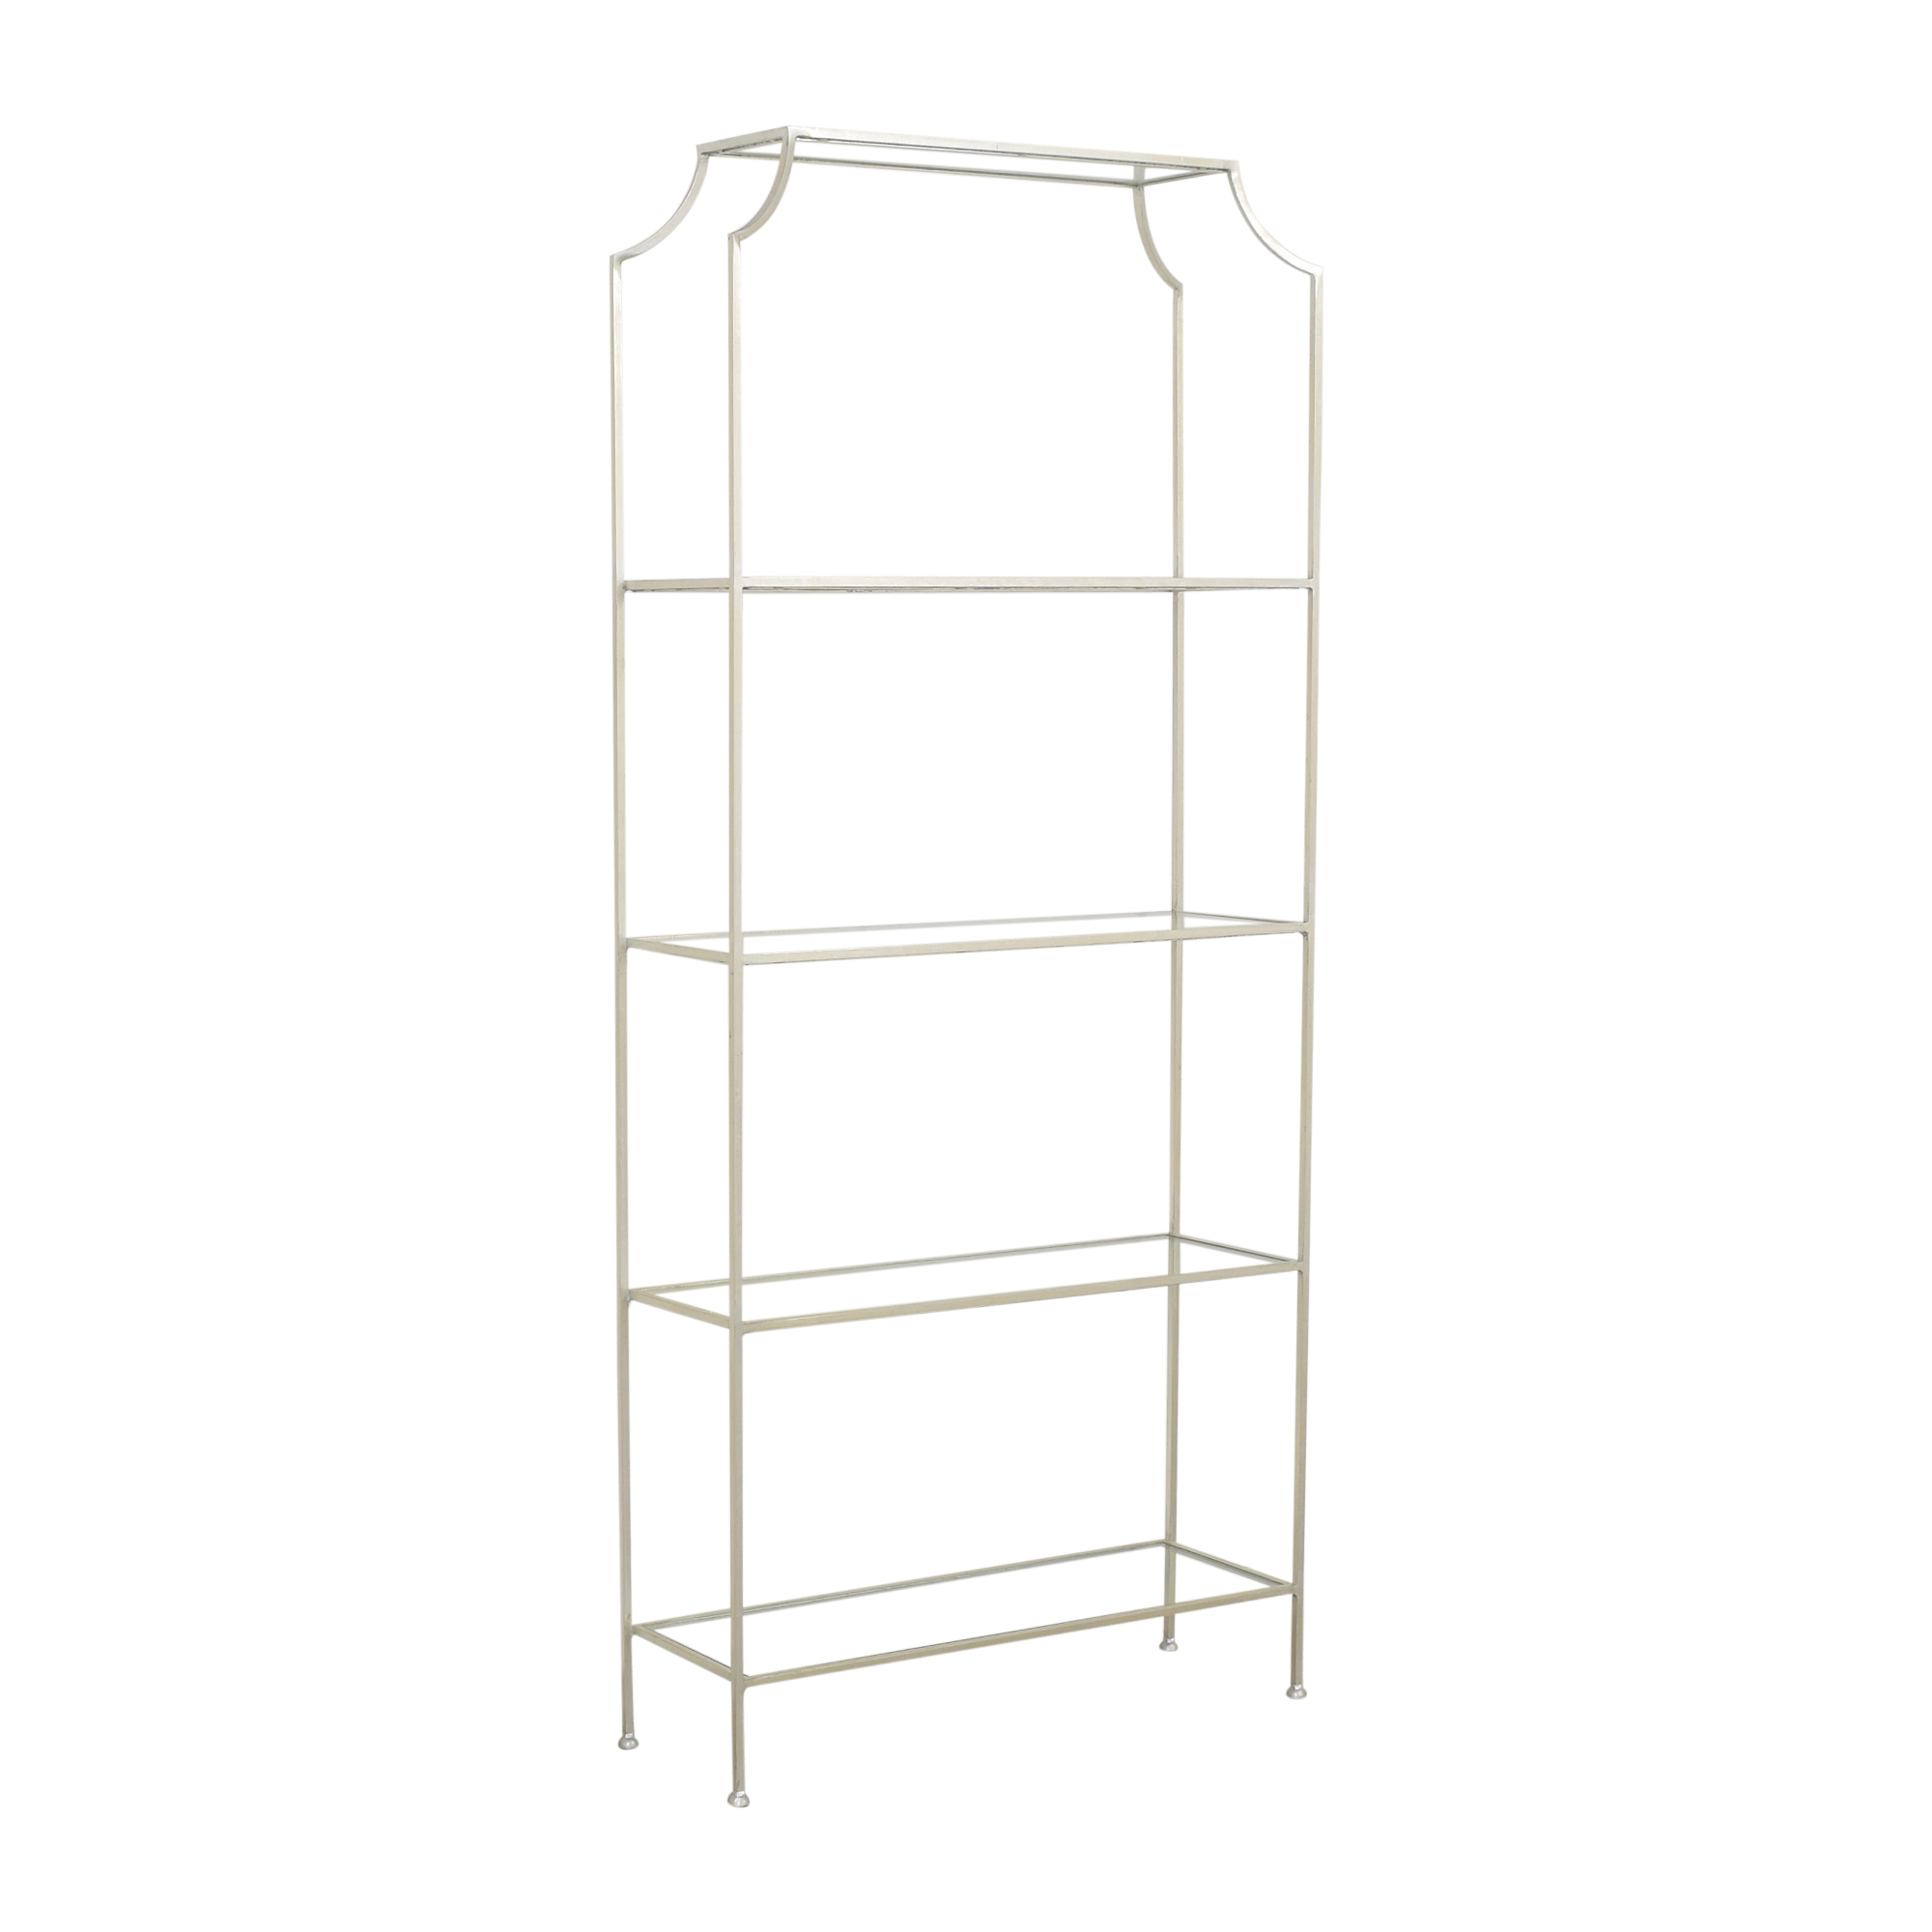 shop Worlds Away Chloe Etagere Worlds Away Bookcases & Shelving